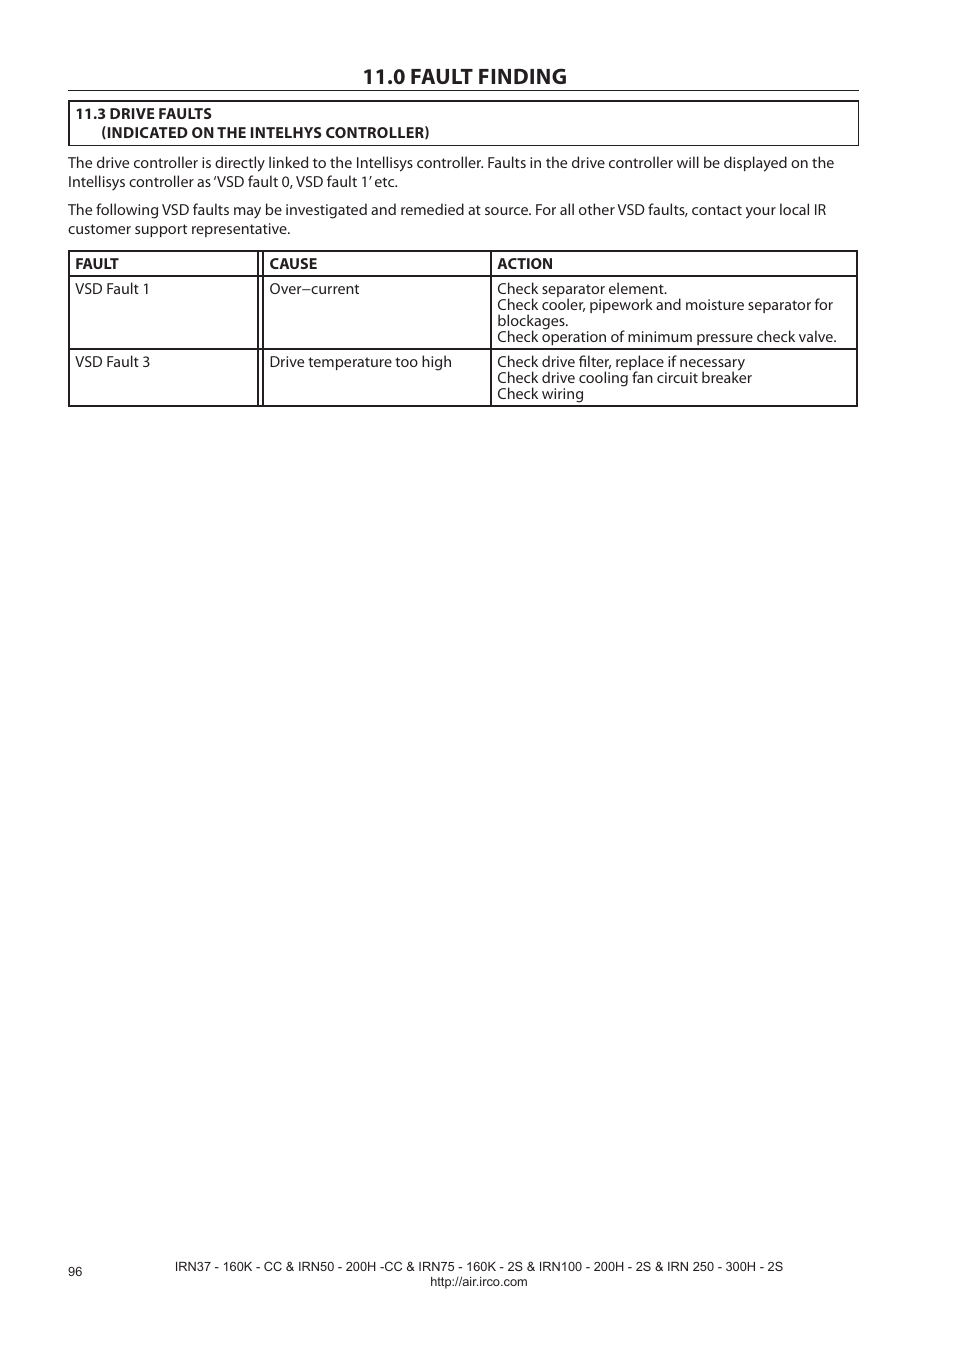 0 fault finding   Ingersoll-Rand NIRVANA IRN75-160K-2S User Manual   Page  98 / 100